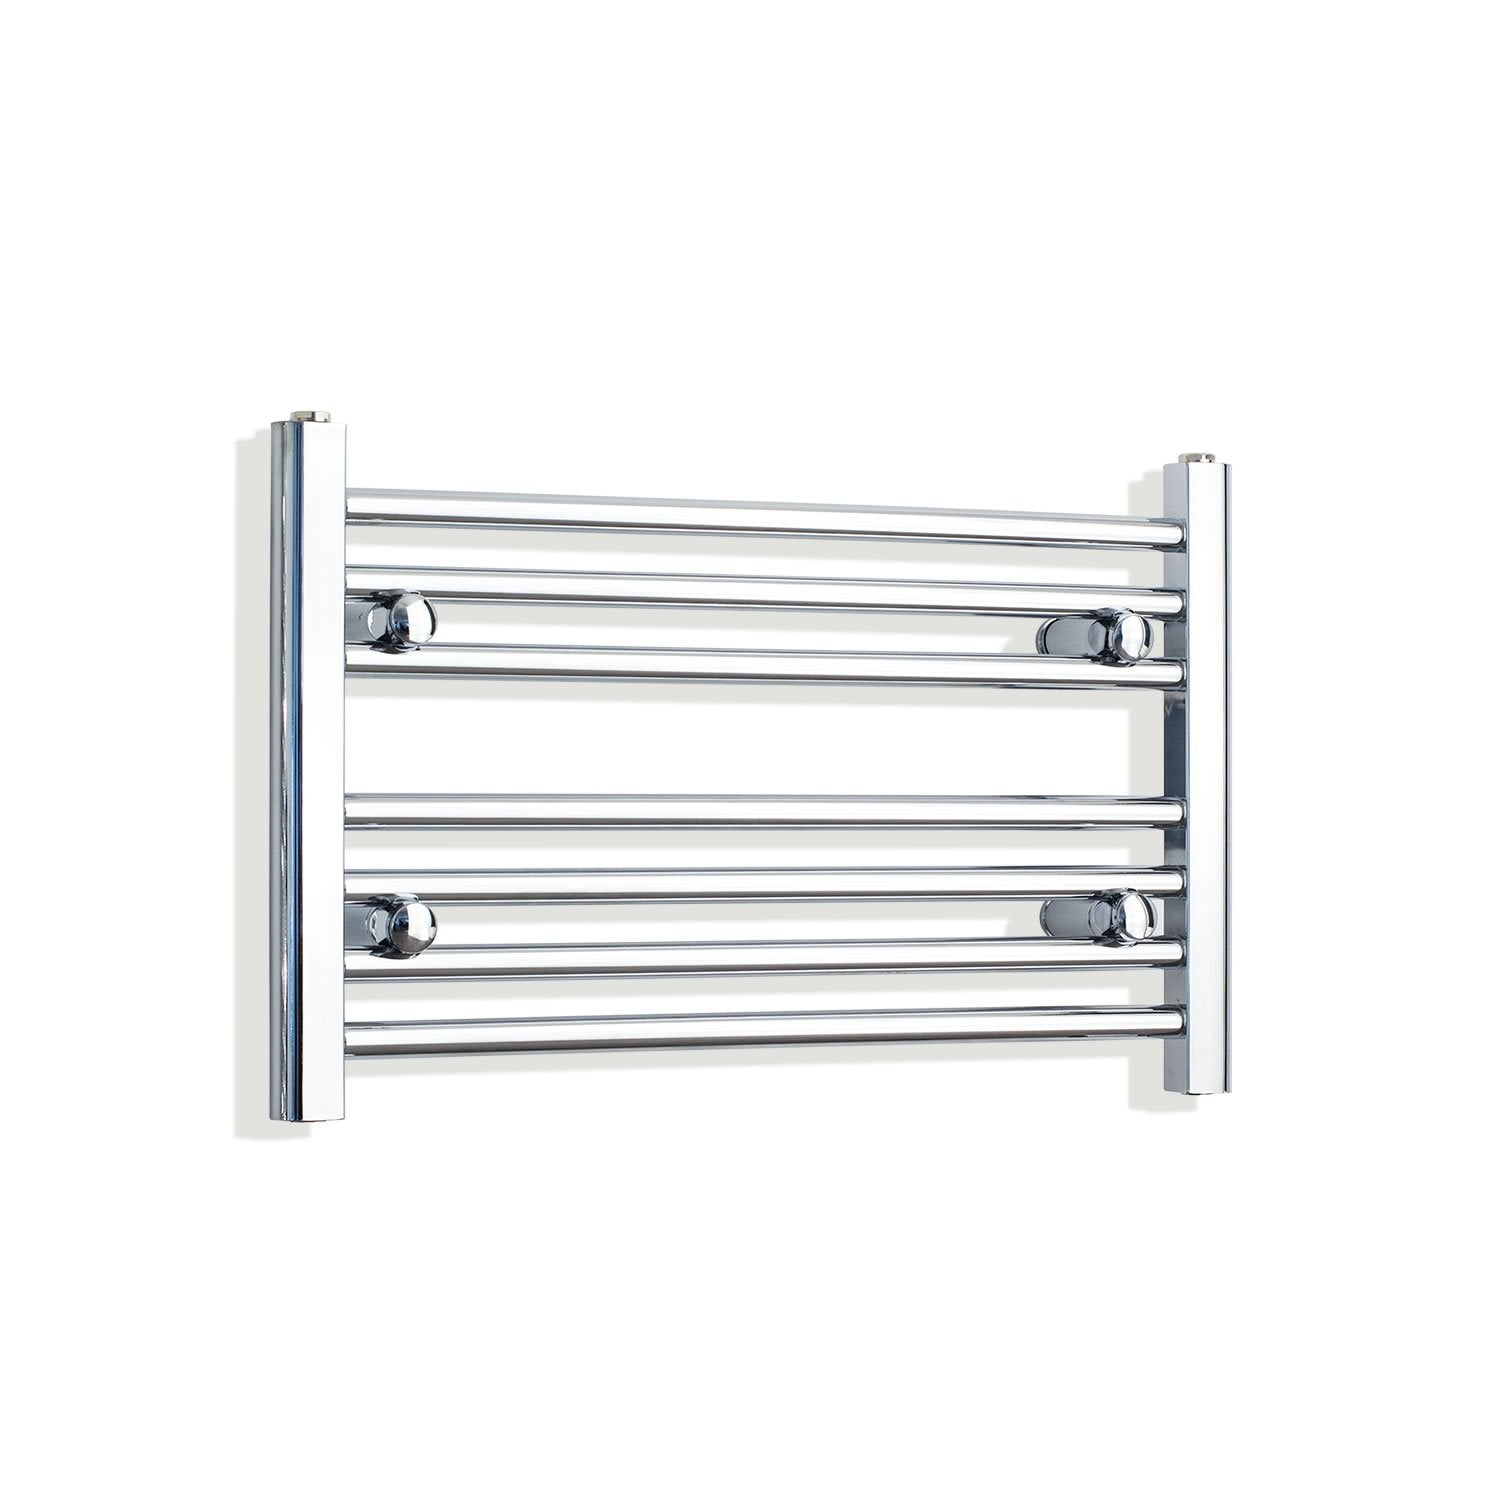 700mm Wide 400mm High Curved Chrome Heated Towel Rail Radiator HTR,Towel Rail Only